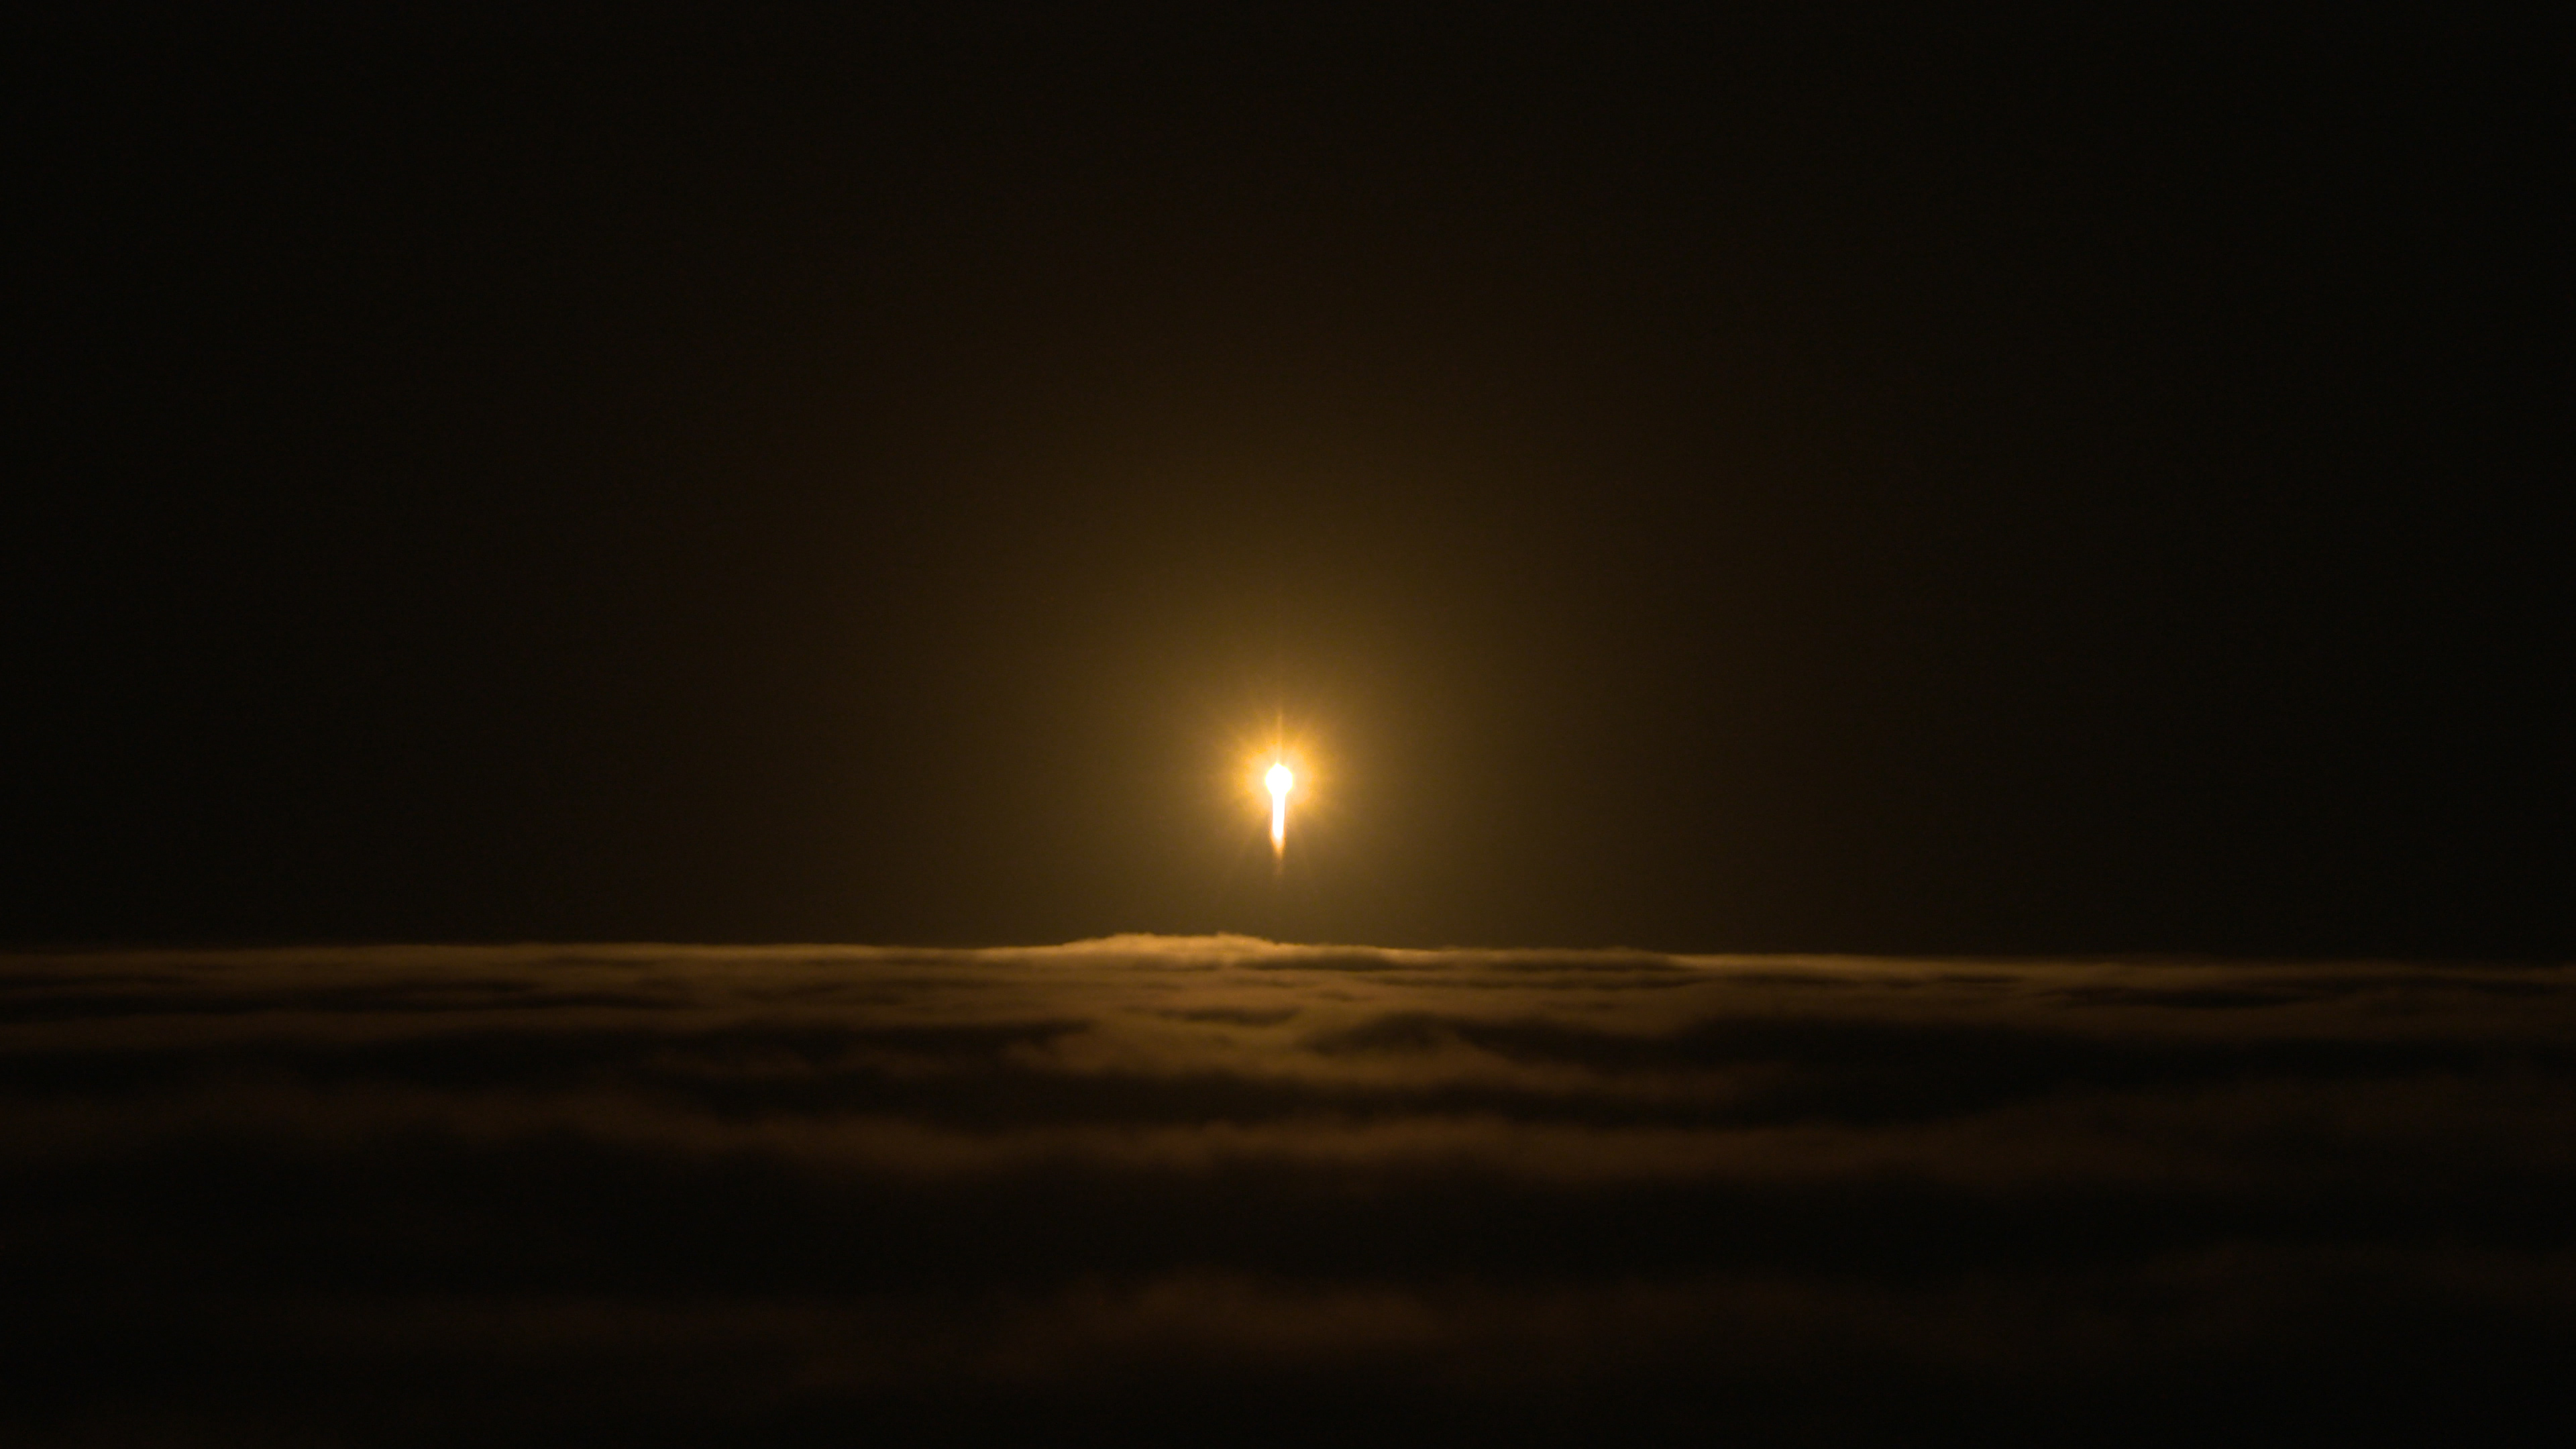 A United Launch Alliance Atlas V rocket lifts off from Space Launch Complex 3 at Vandenberg Air Force Base, California, carrying NASA's Interior Exploration using Seismic Investigations, Geodesy and Heat Transport, or InSight, Mars lander.